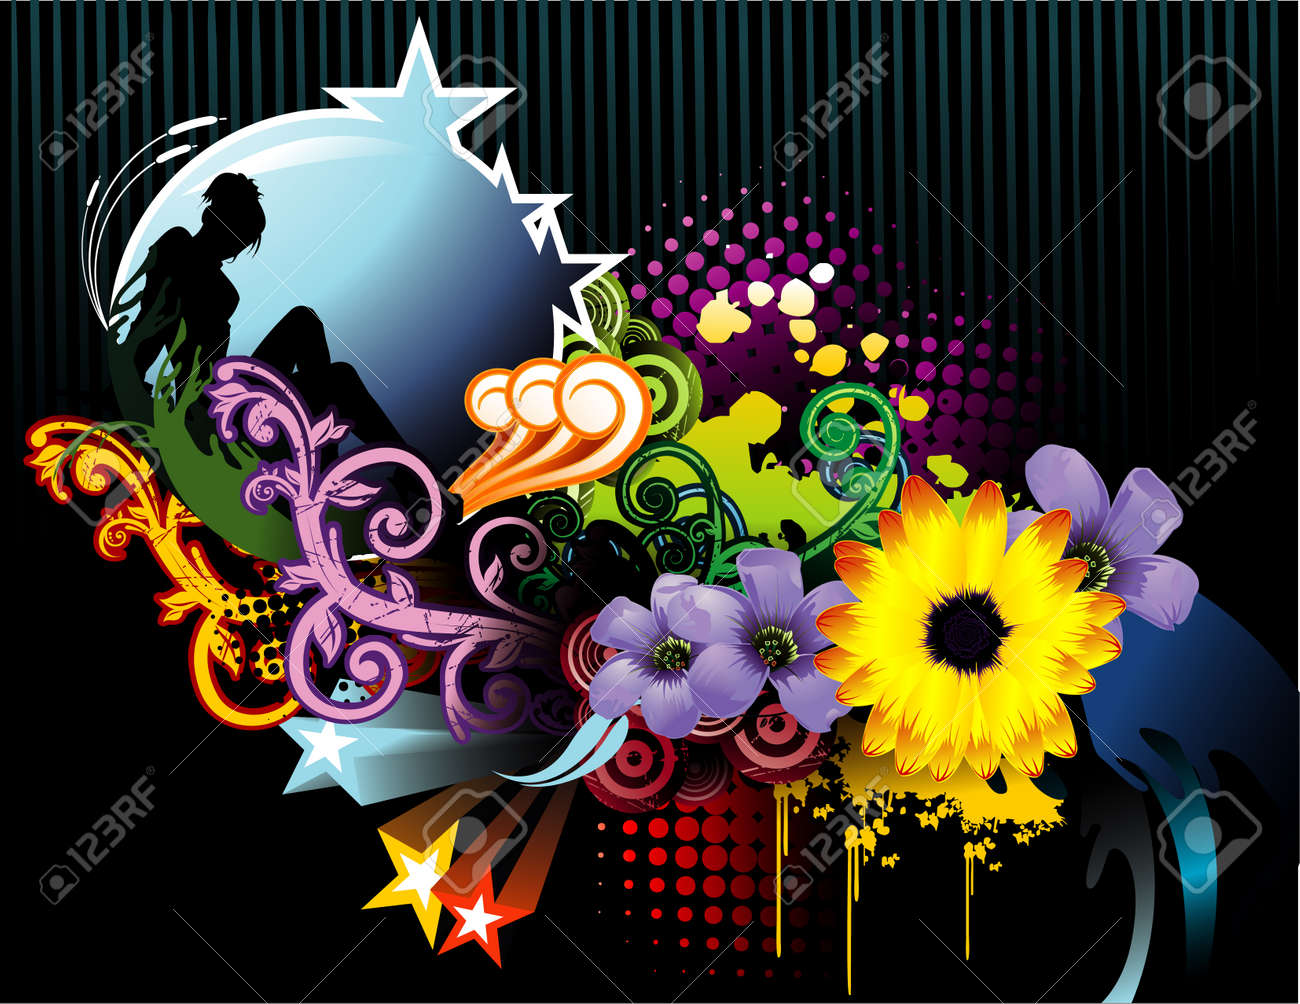 vector illustration of colorful flowers with dark background and lady Stock Vector - 3136182